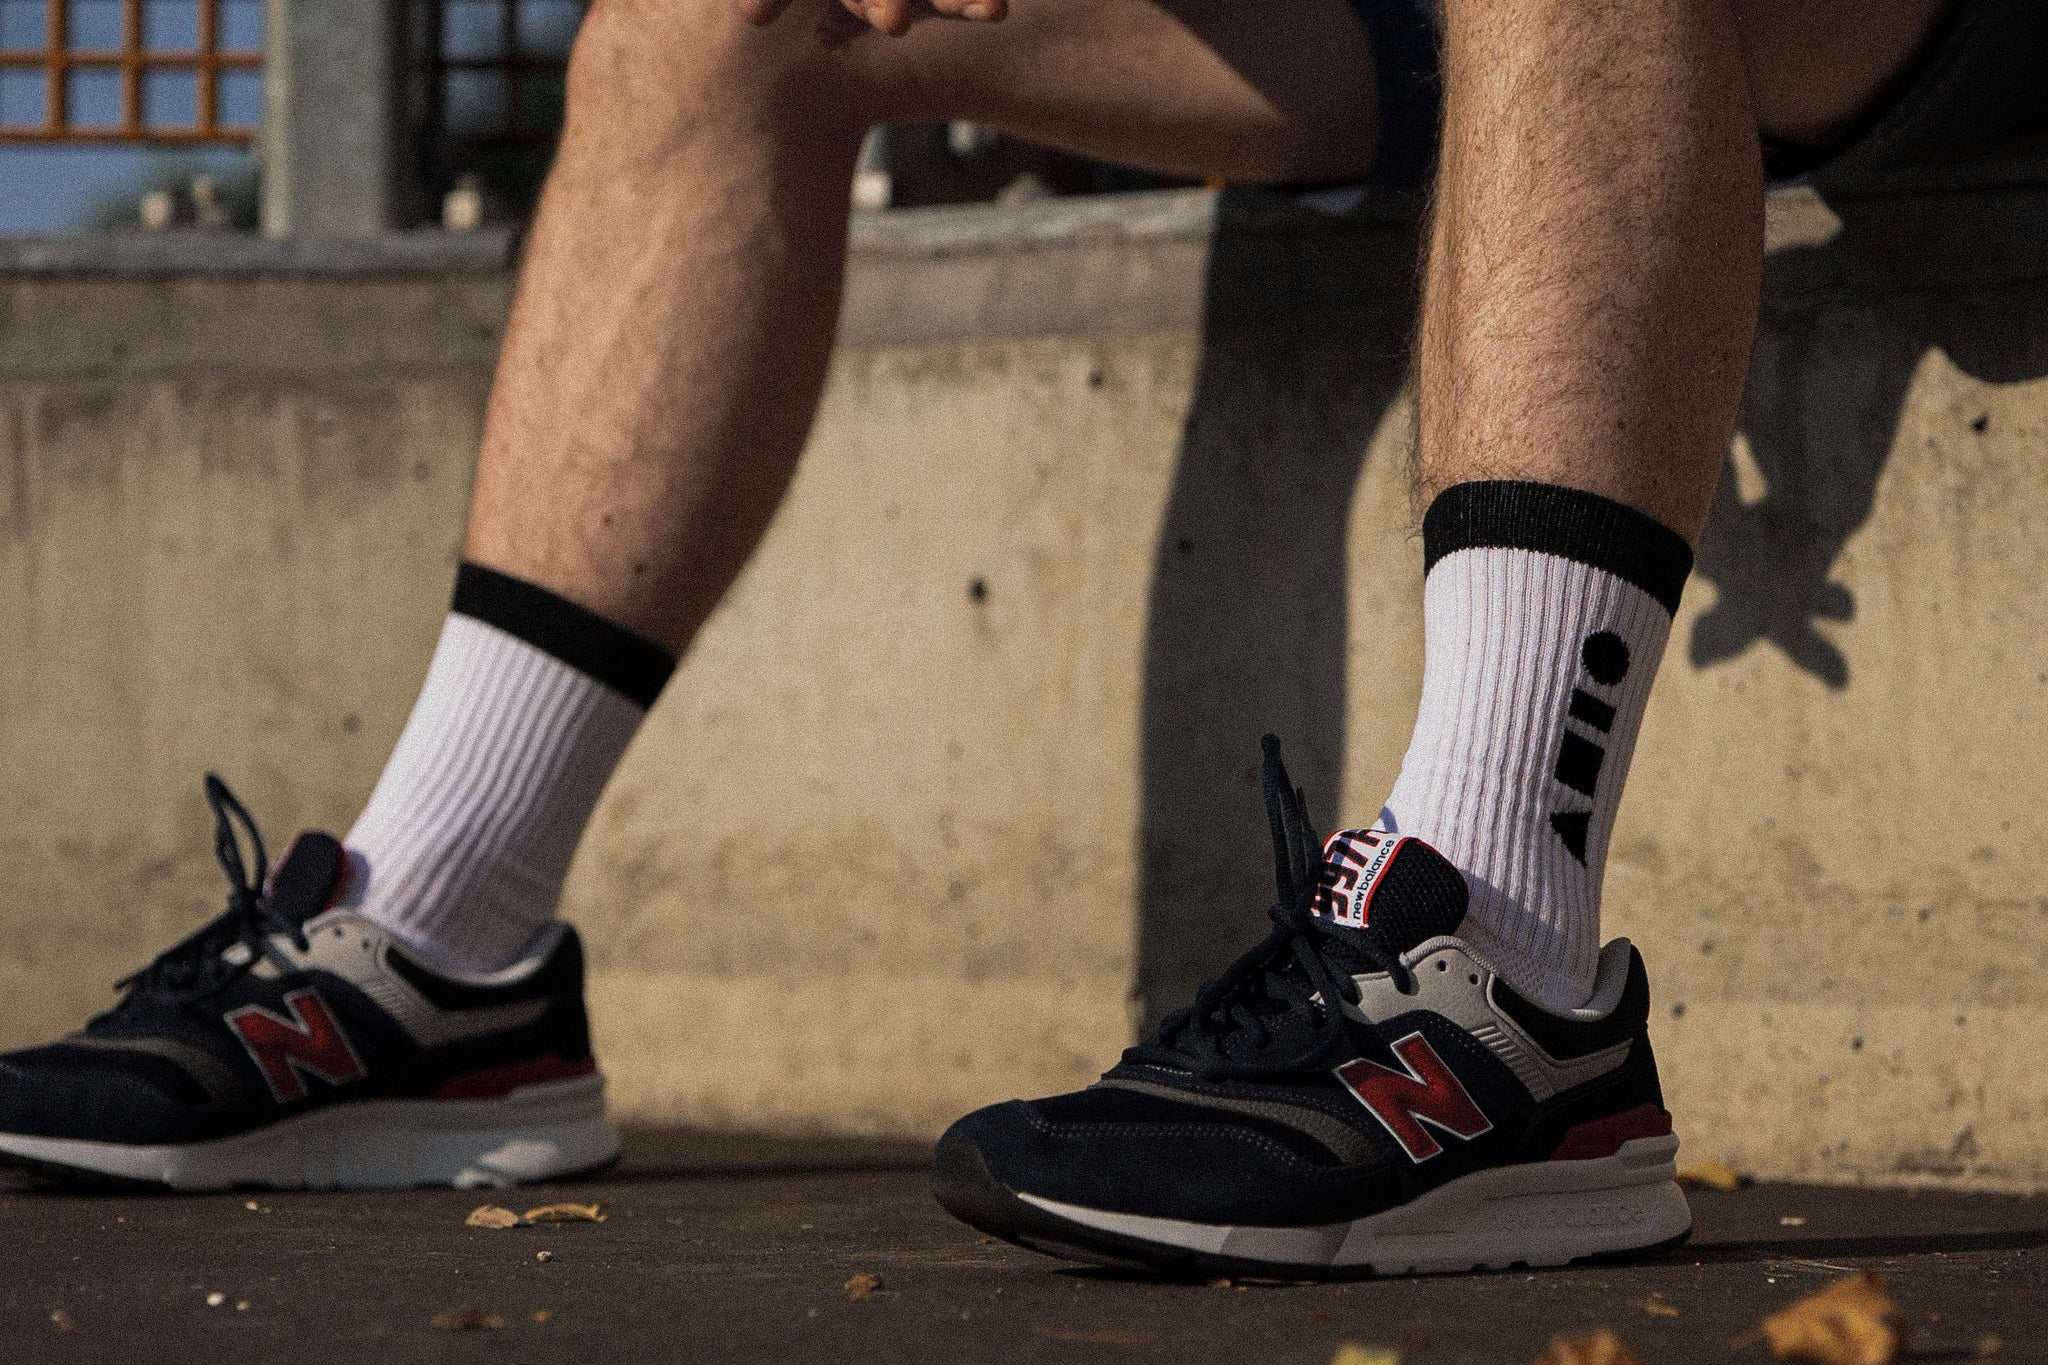 Are Australian made socks better?